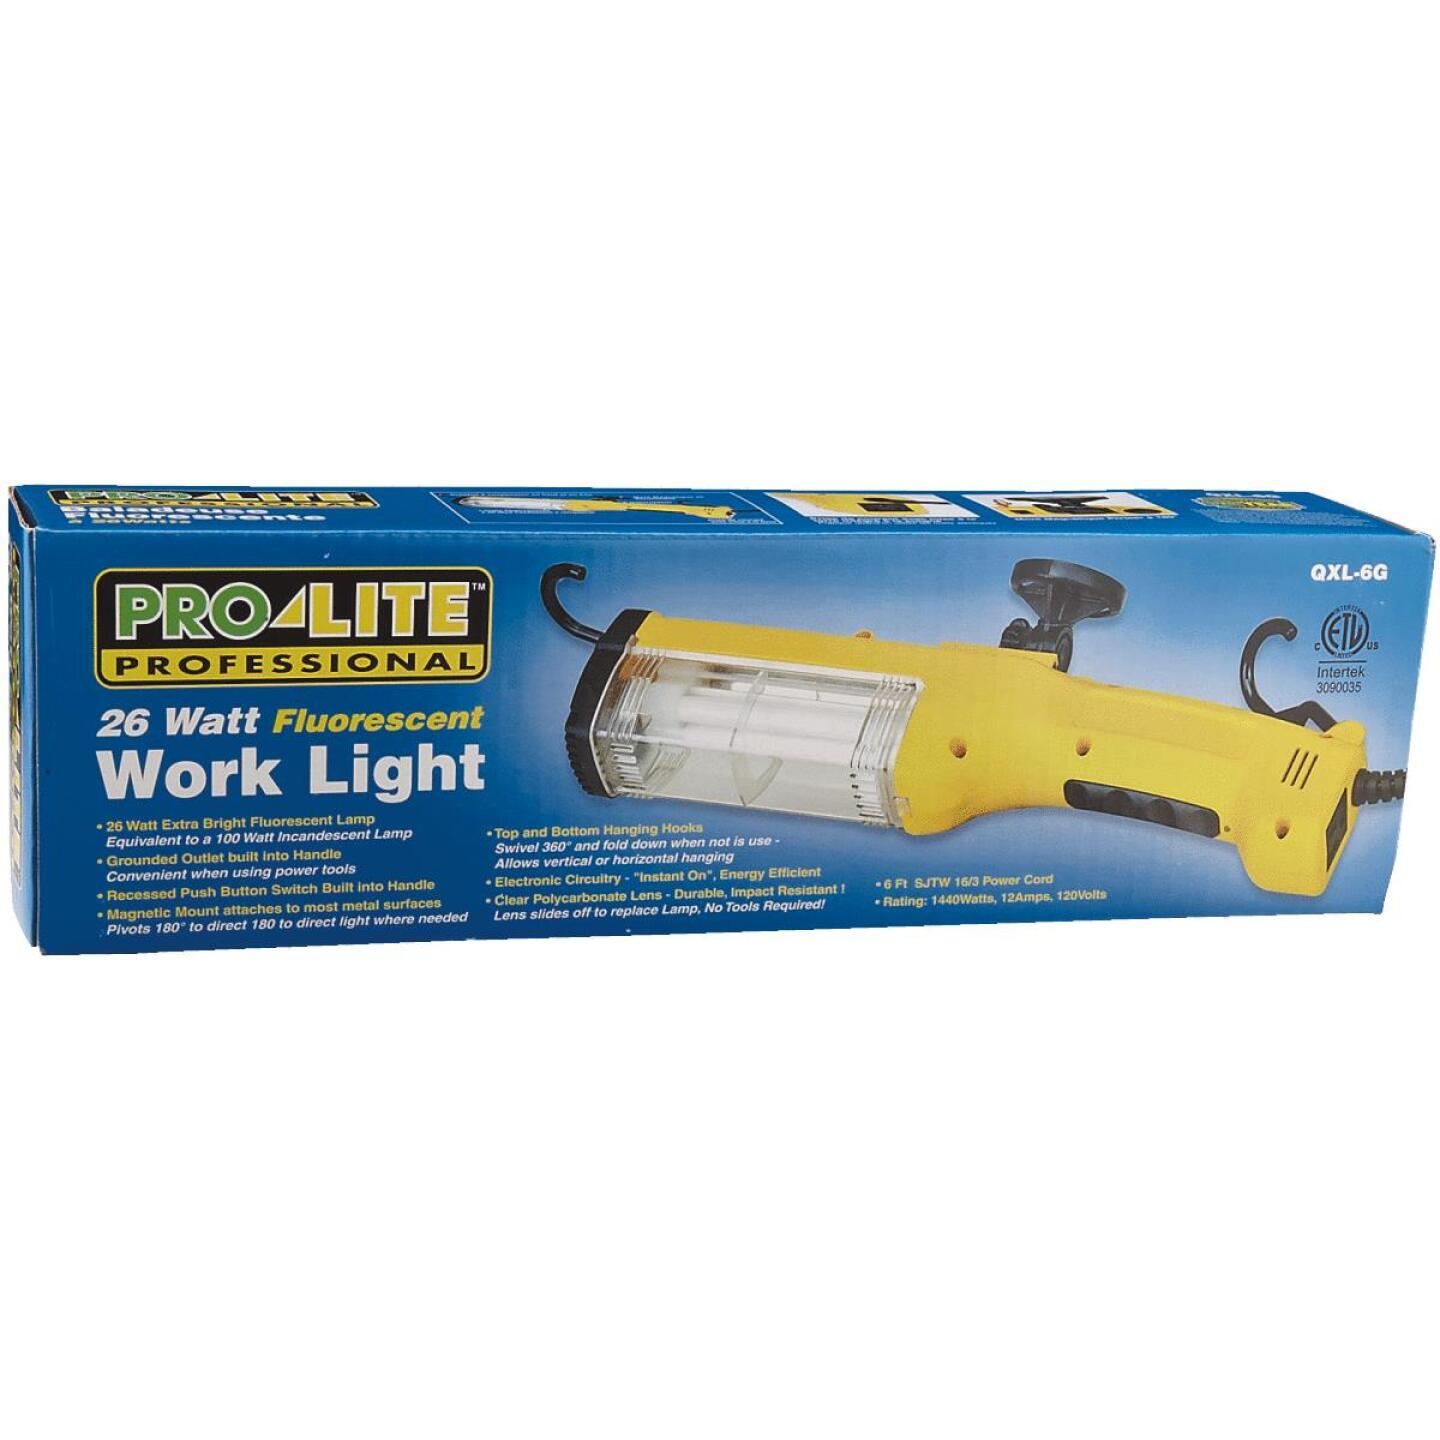 Alert Stamping 26W Fluorescent Trouble Light with 6 Ft. Power Cord Image 2